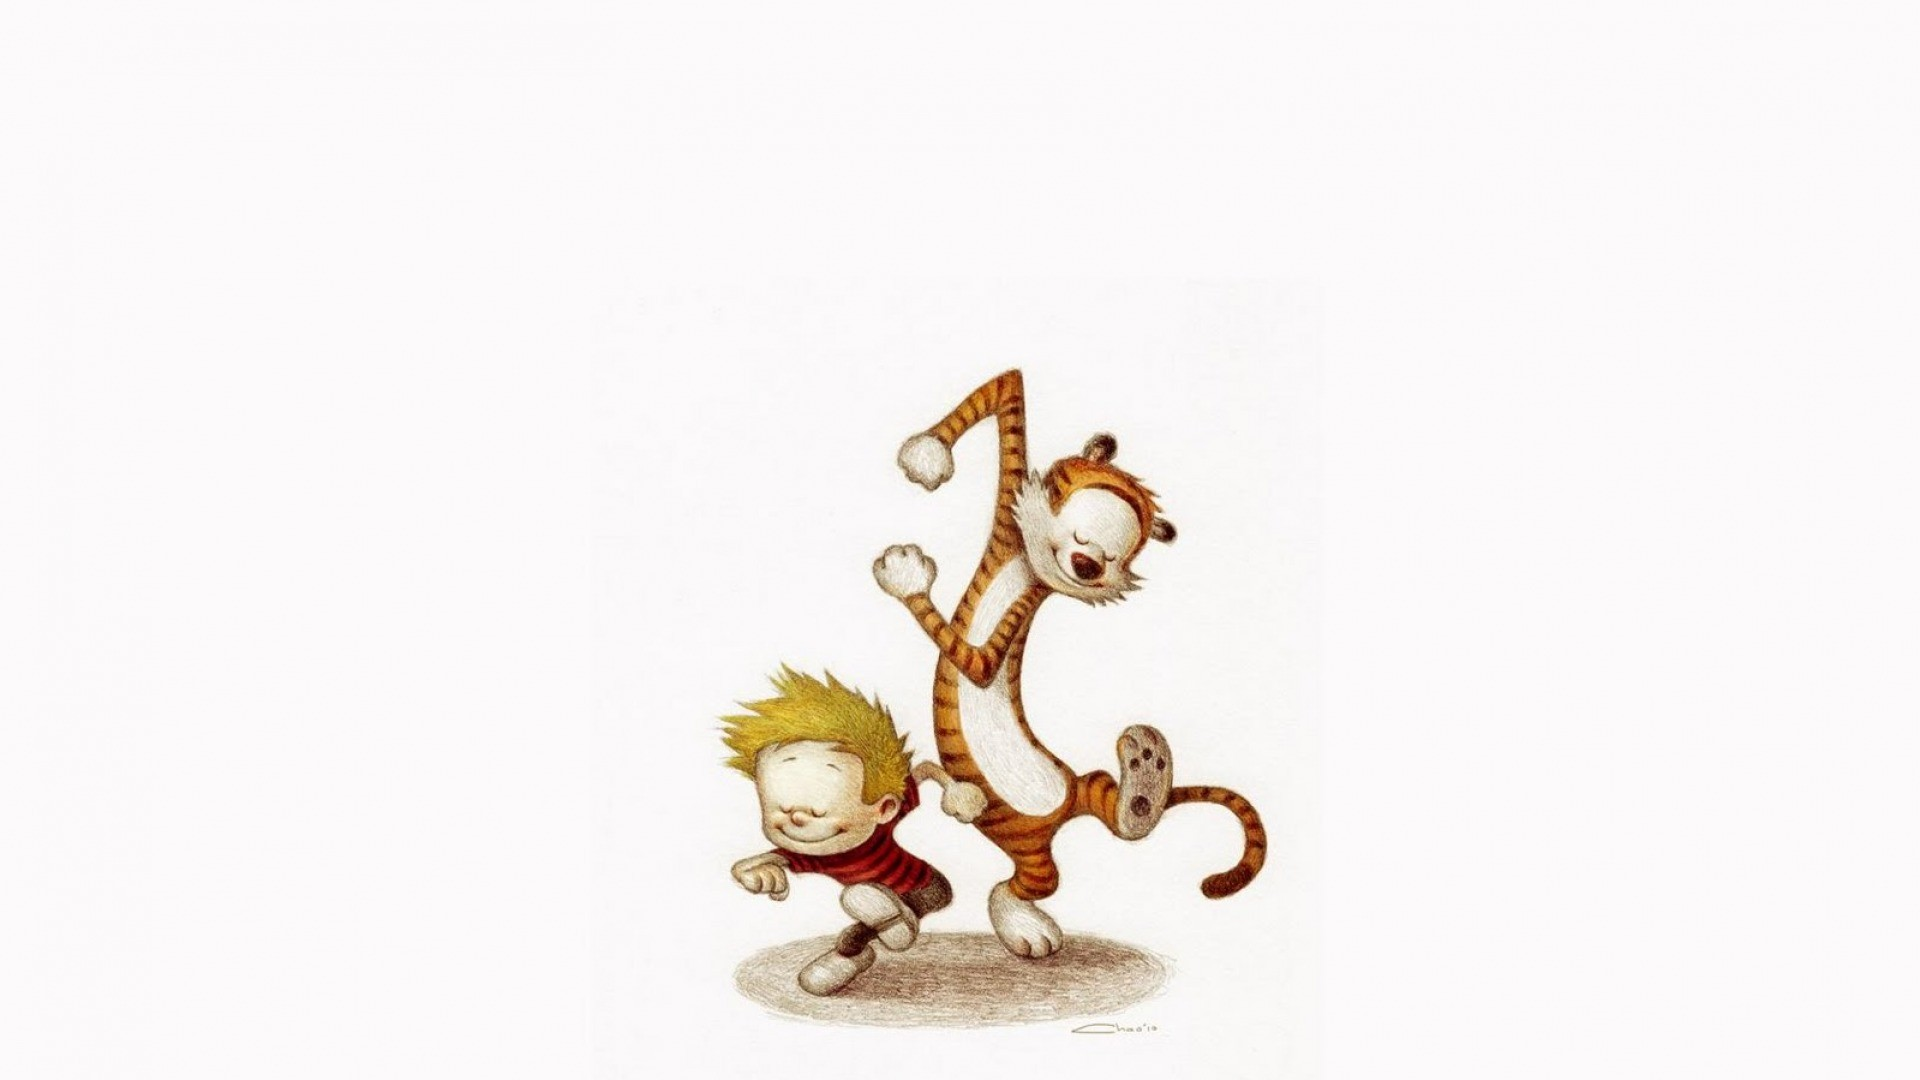 Calvin And Hobbes Dancing Hd Wallpaper Iphone 7 Plus Iphone 8